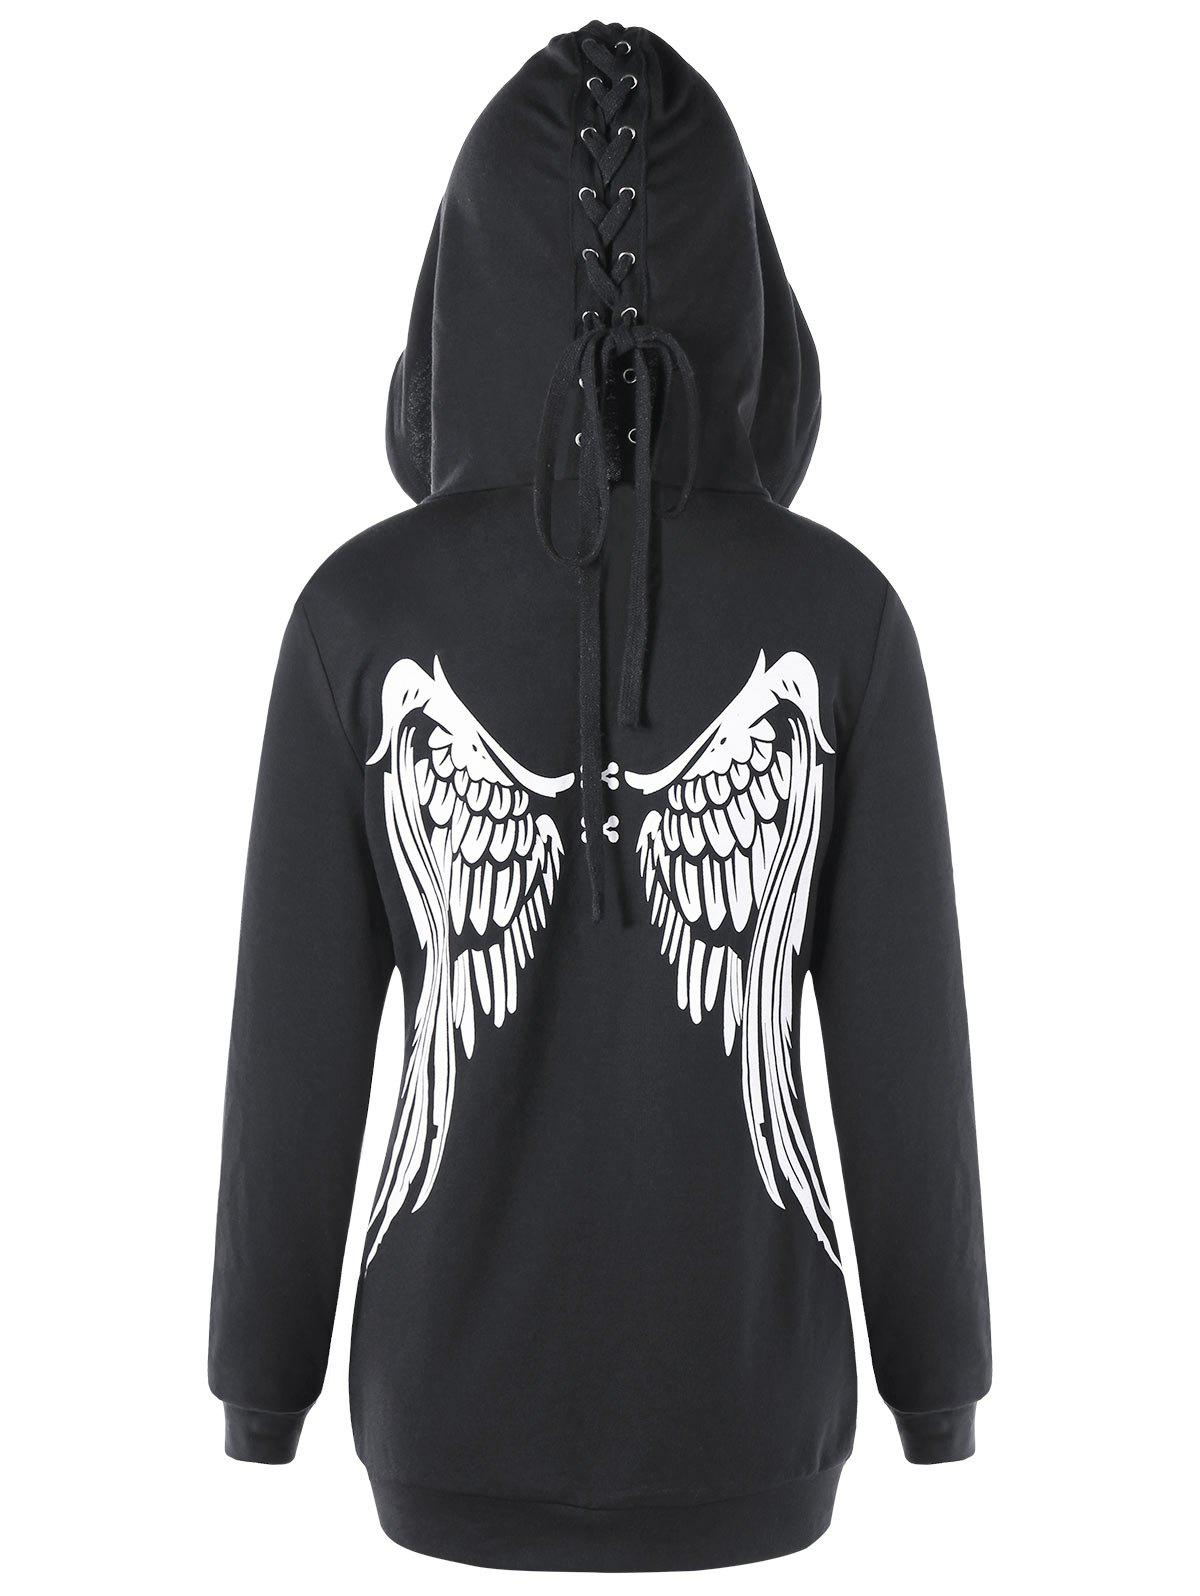 Lace Up Zippered Angel Wings HoodieWOMEN<br><br>Size: XL; Color: BLACK; Material: Polyester; Shirt Length: Regular; Sleeve Length: Full; Style: Casual; Pattern Style: Print; Embellishment: Criss-Cross; Season: Fall,Spring; Weight: 0.4870kg; Package Contents: 1 x Hoodie;